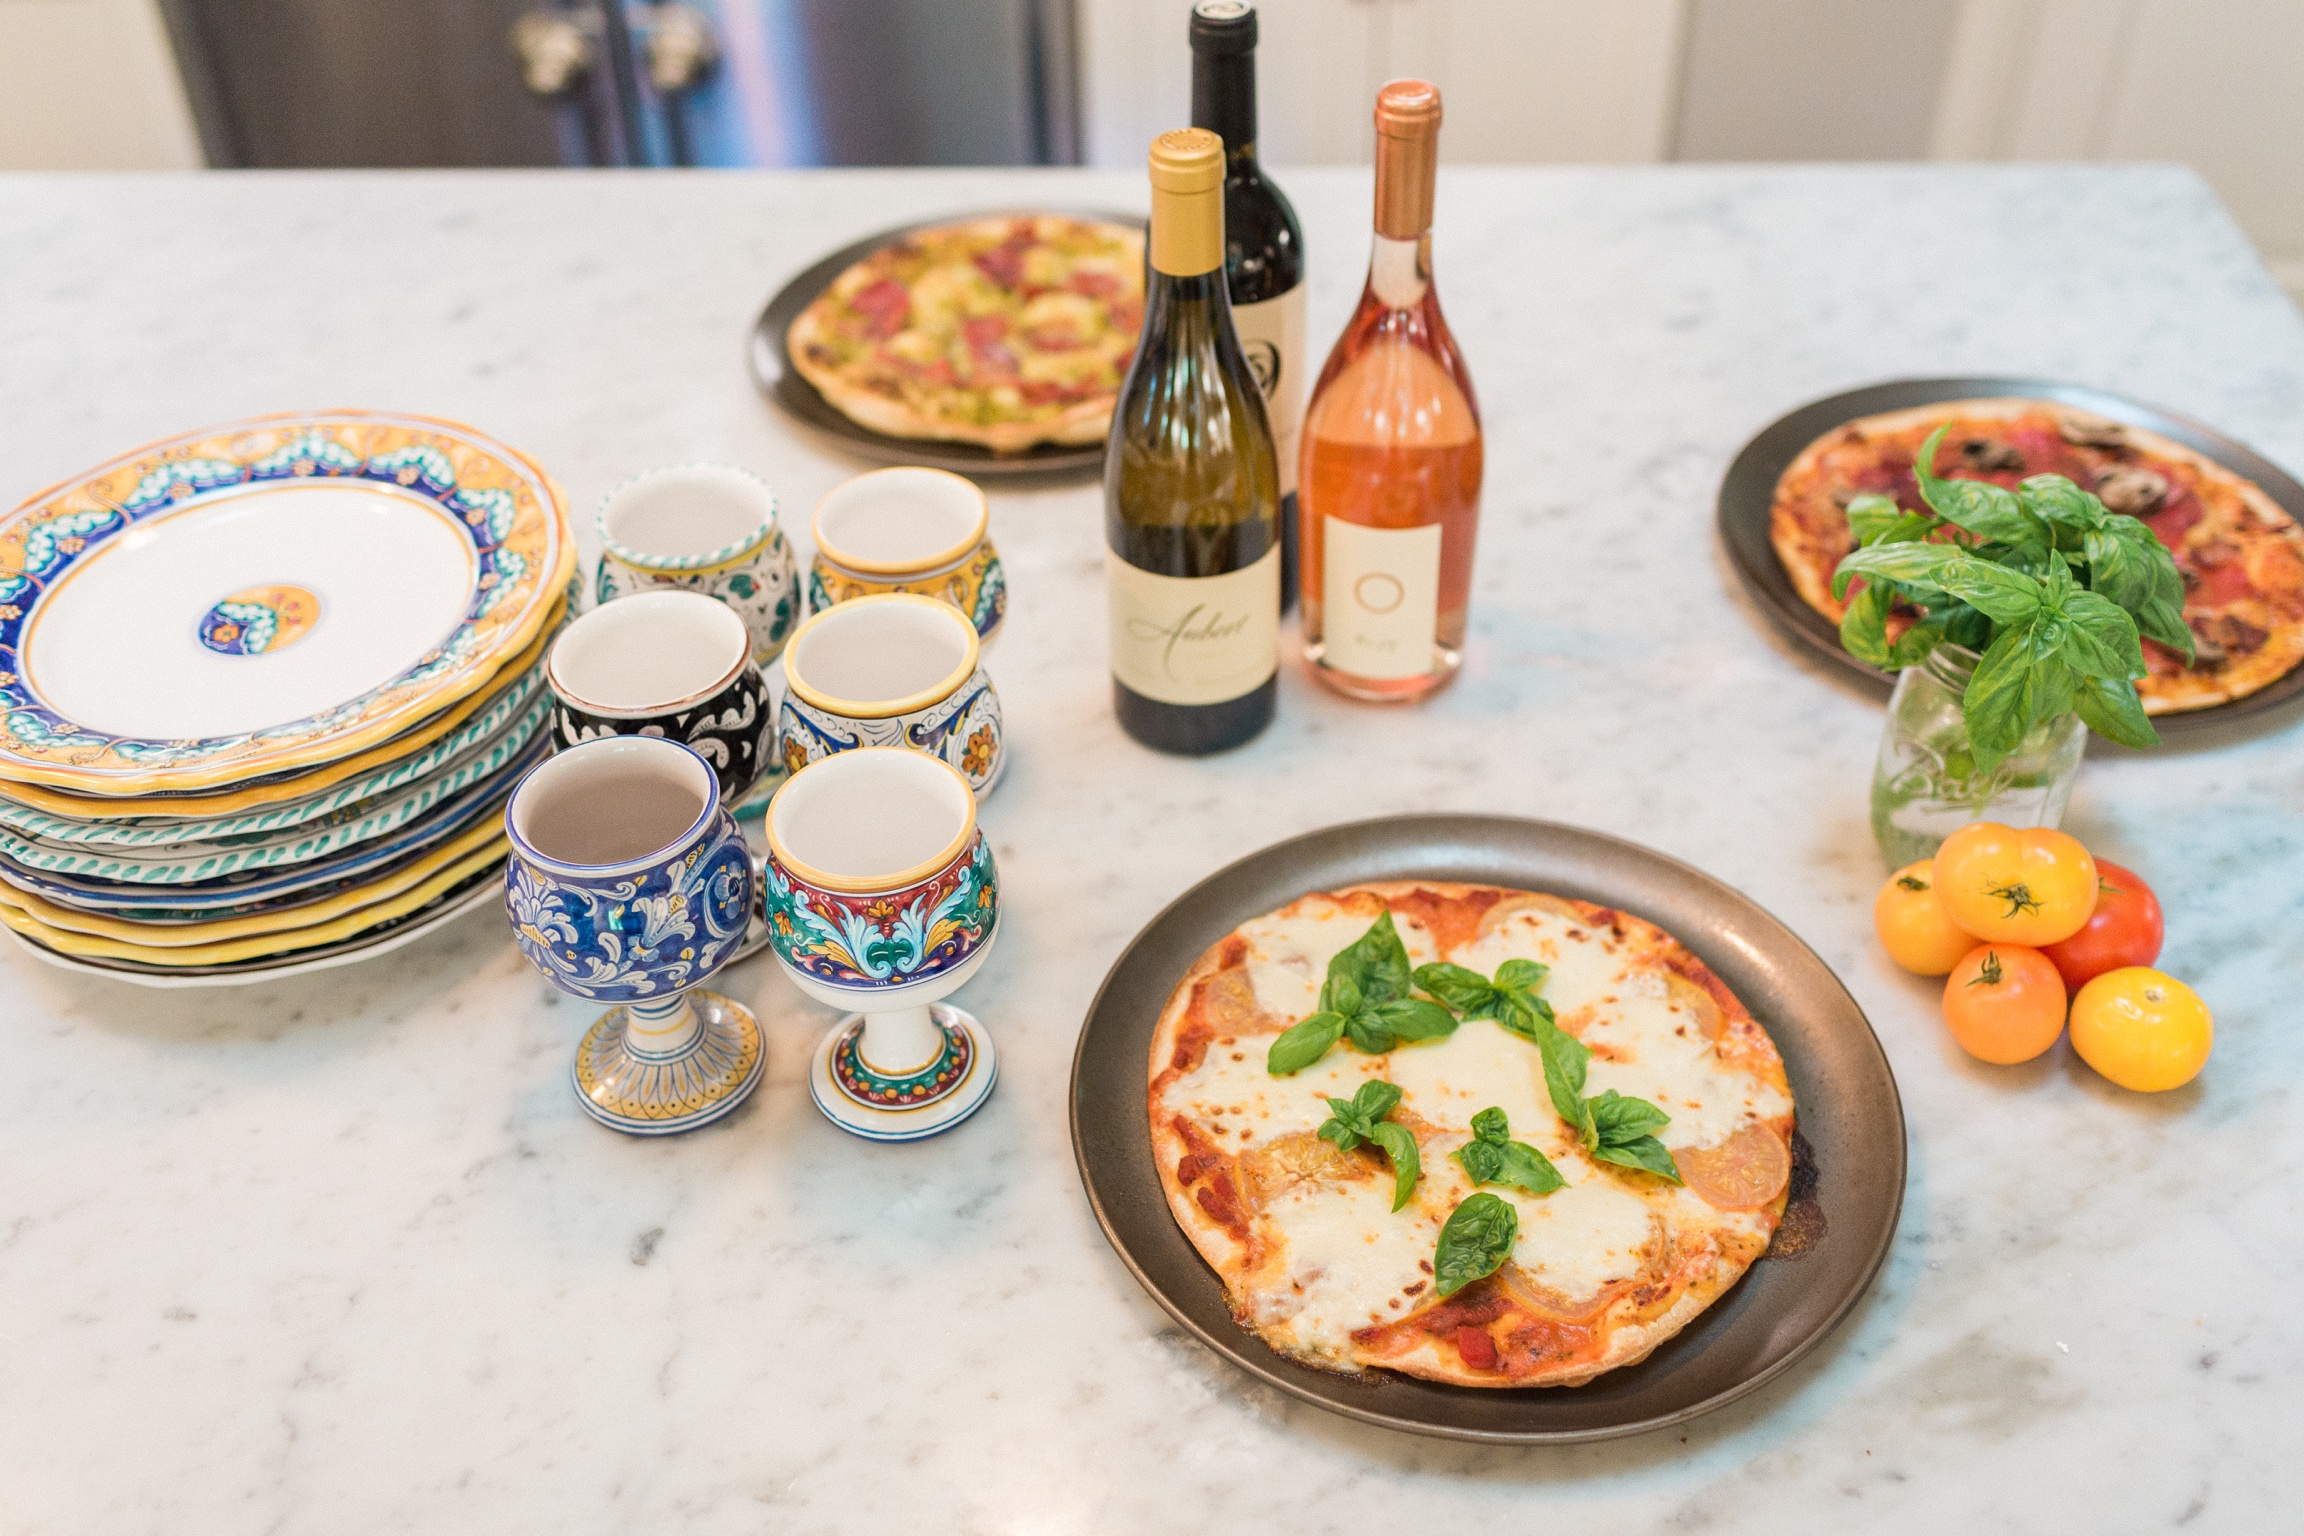 Host a DIY Pizza Party